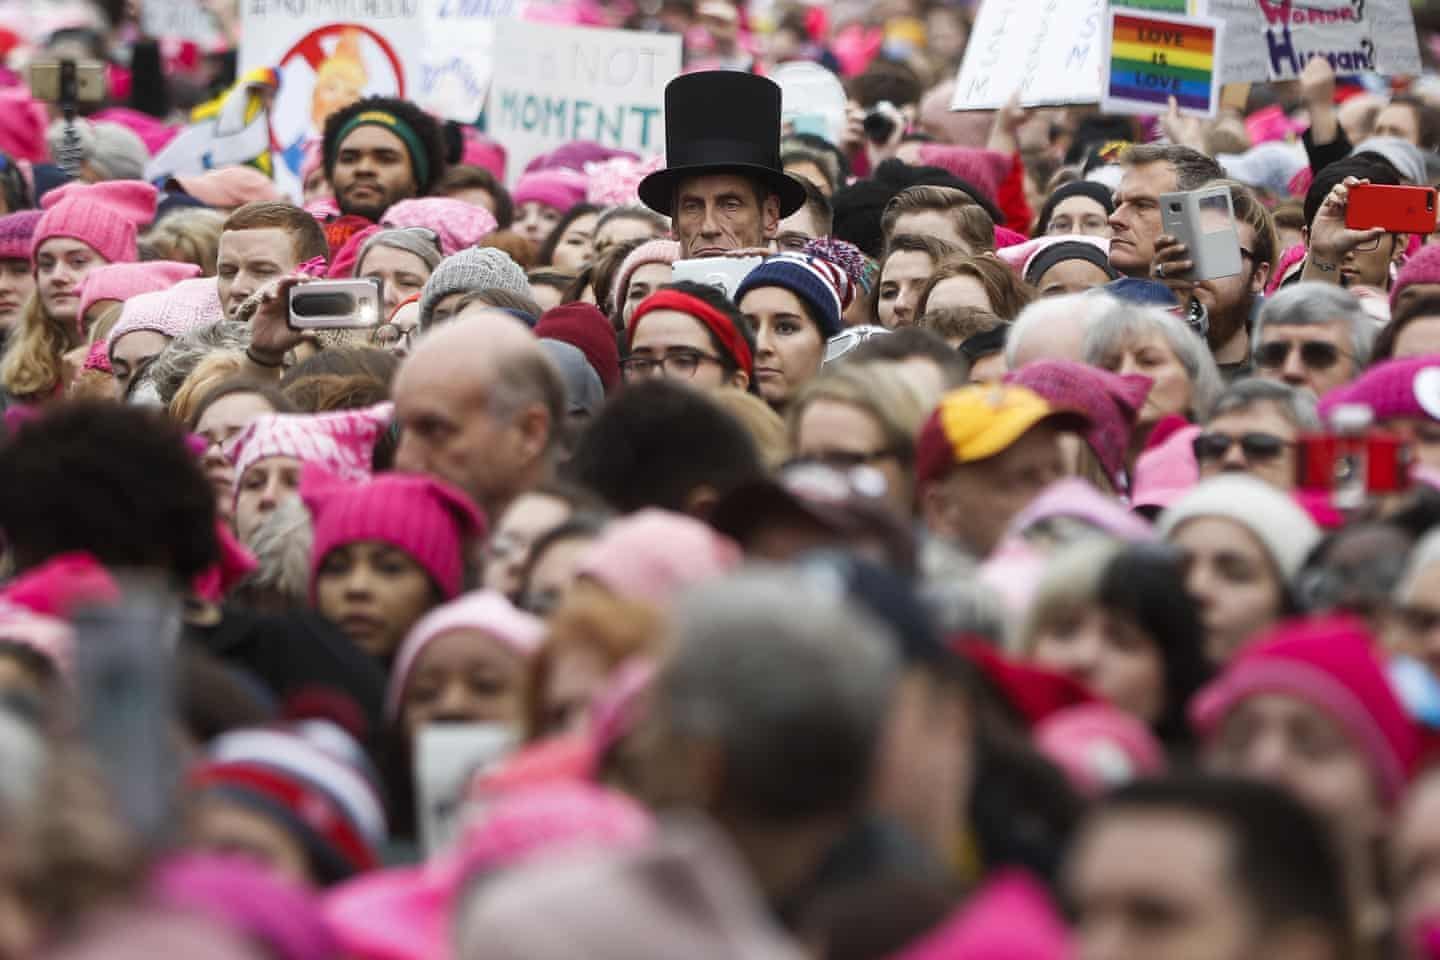 A man dressed as Abraham Lincoln stands with protestors at the Women's March on Washington